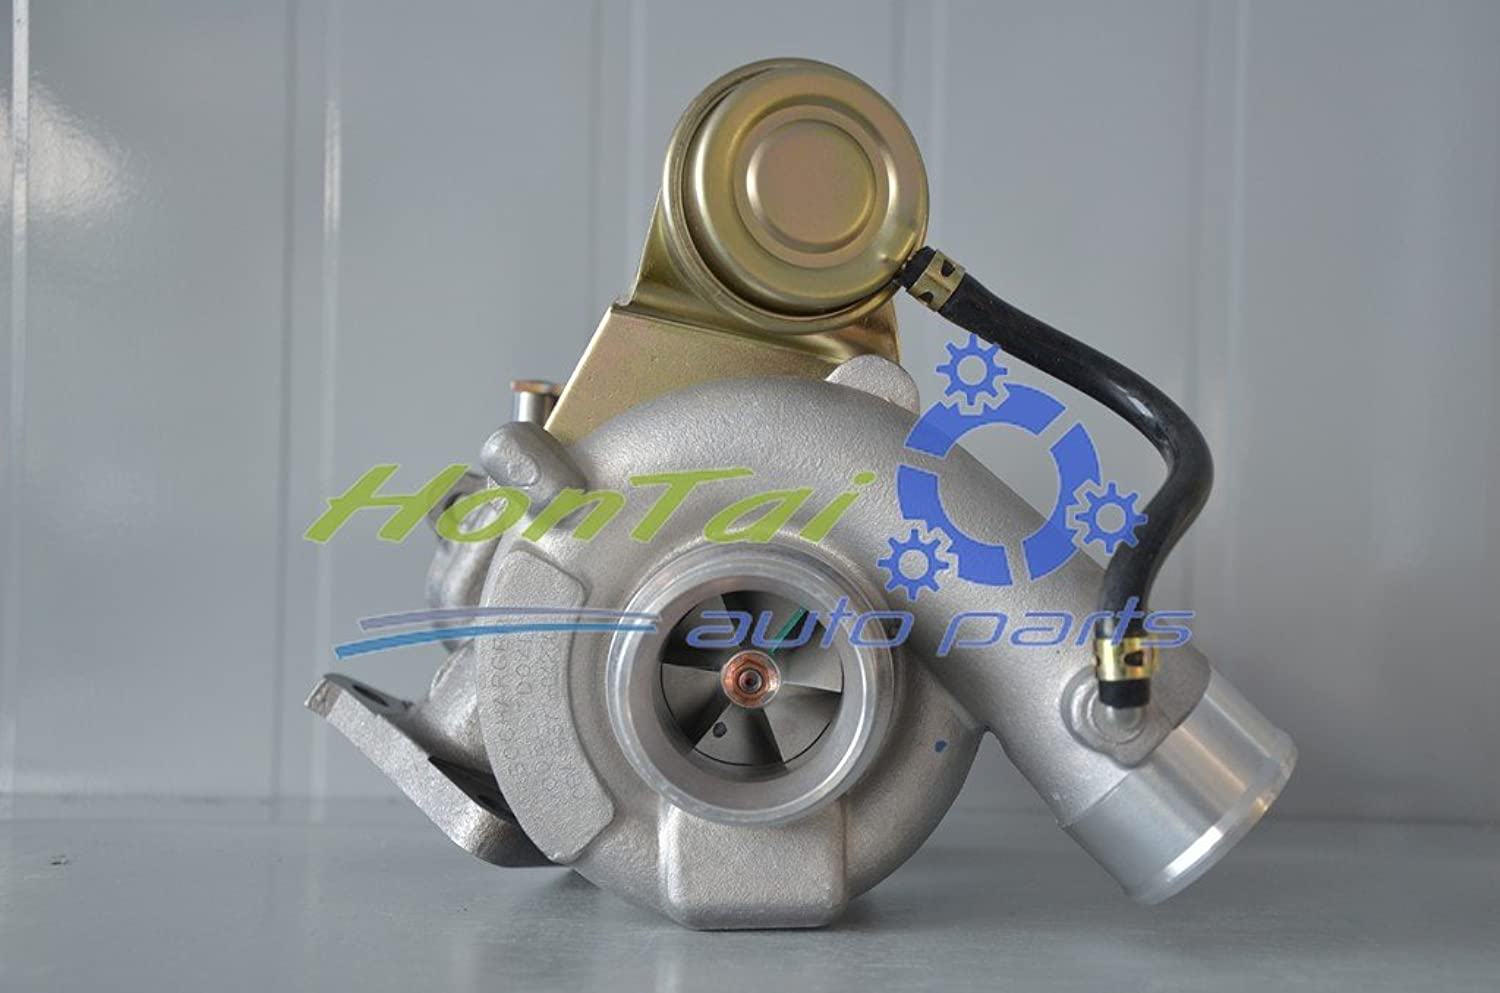 New TD04L 4937704200 Turbocharger For SUBARU Forester Impreza, 58T EJ205 2.0L 210HP with Gaskets